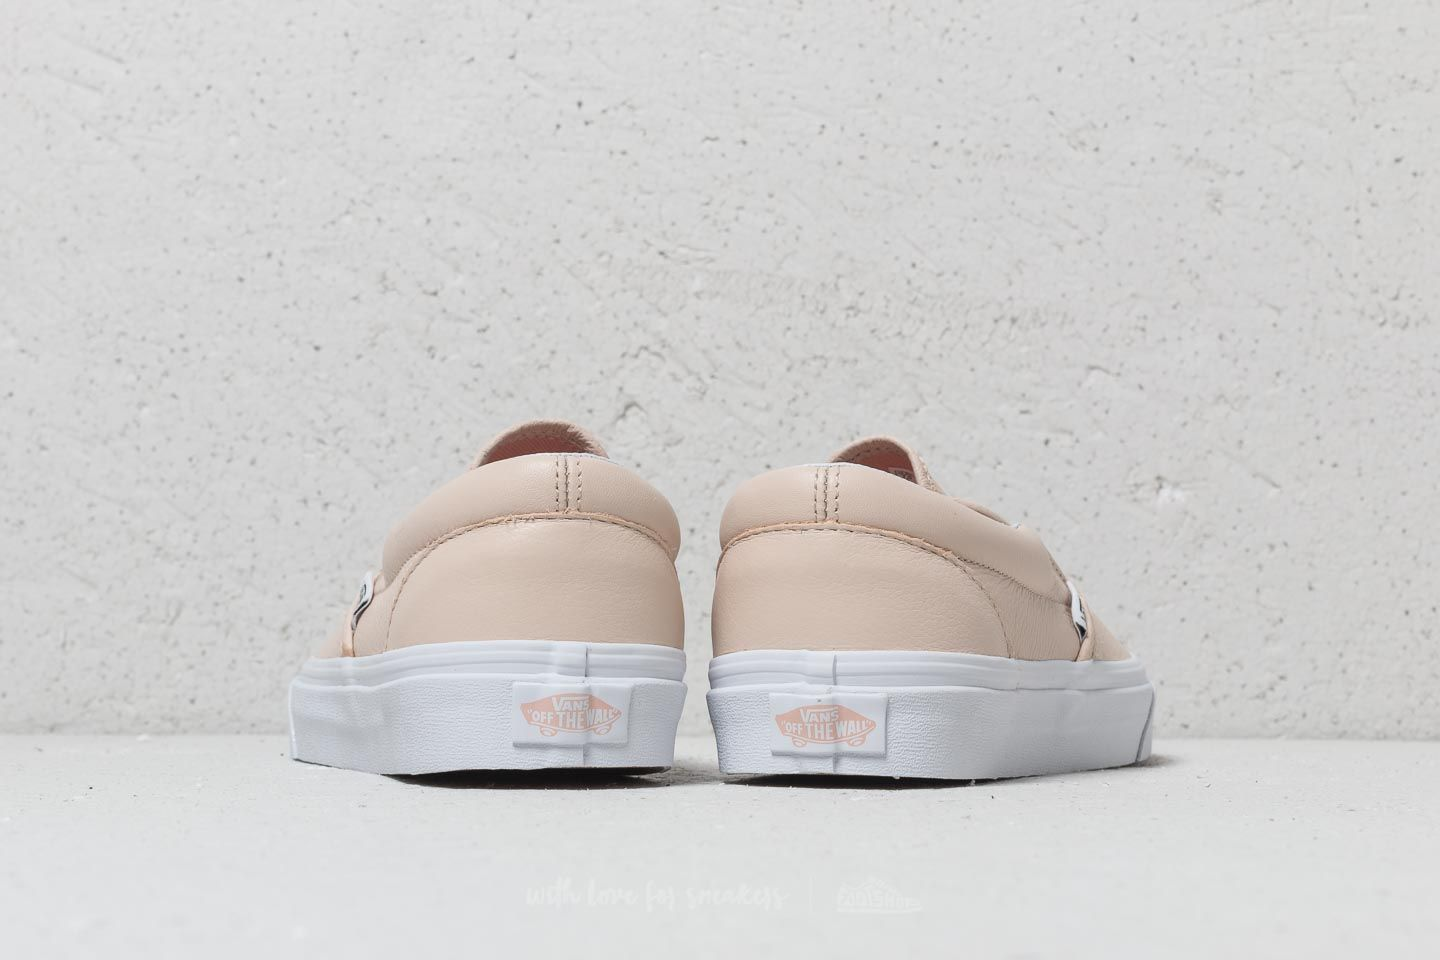 Vans Classic Slip On (Lurex Gore) Sand Dollar | Footshop